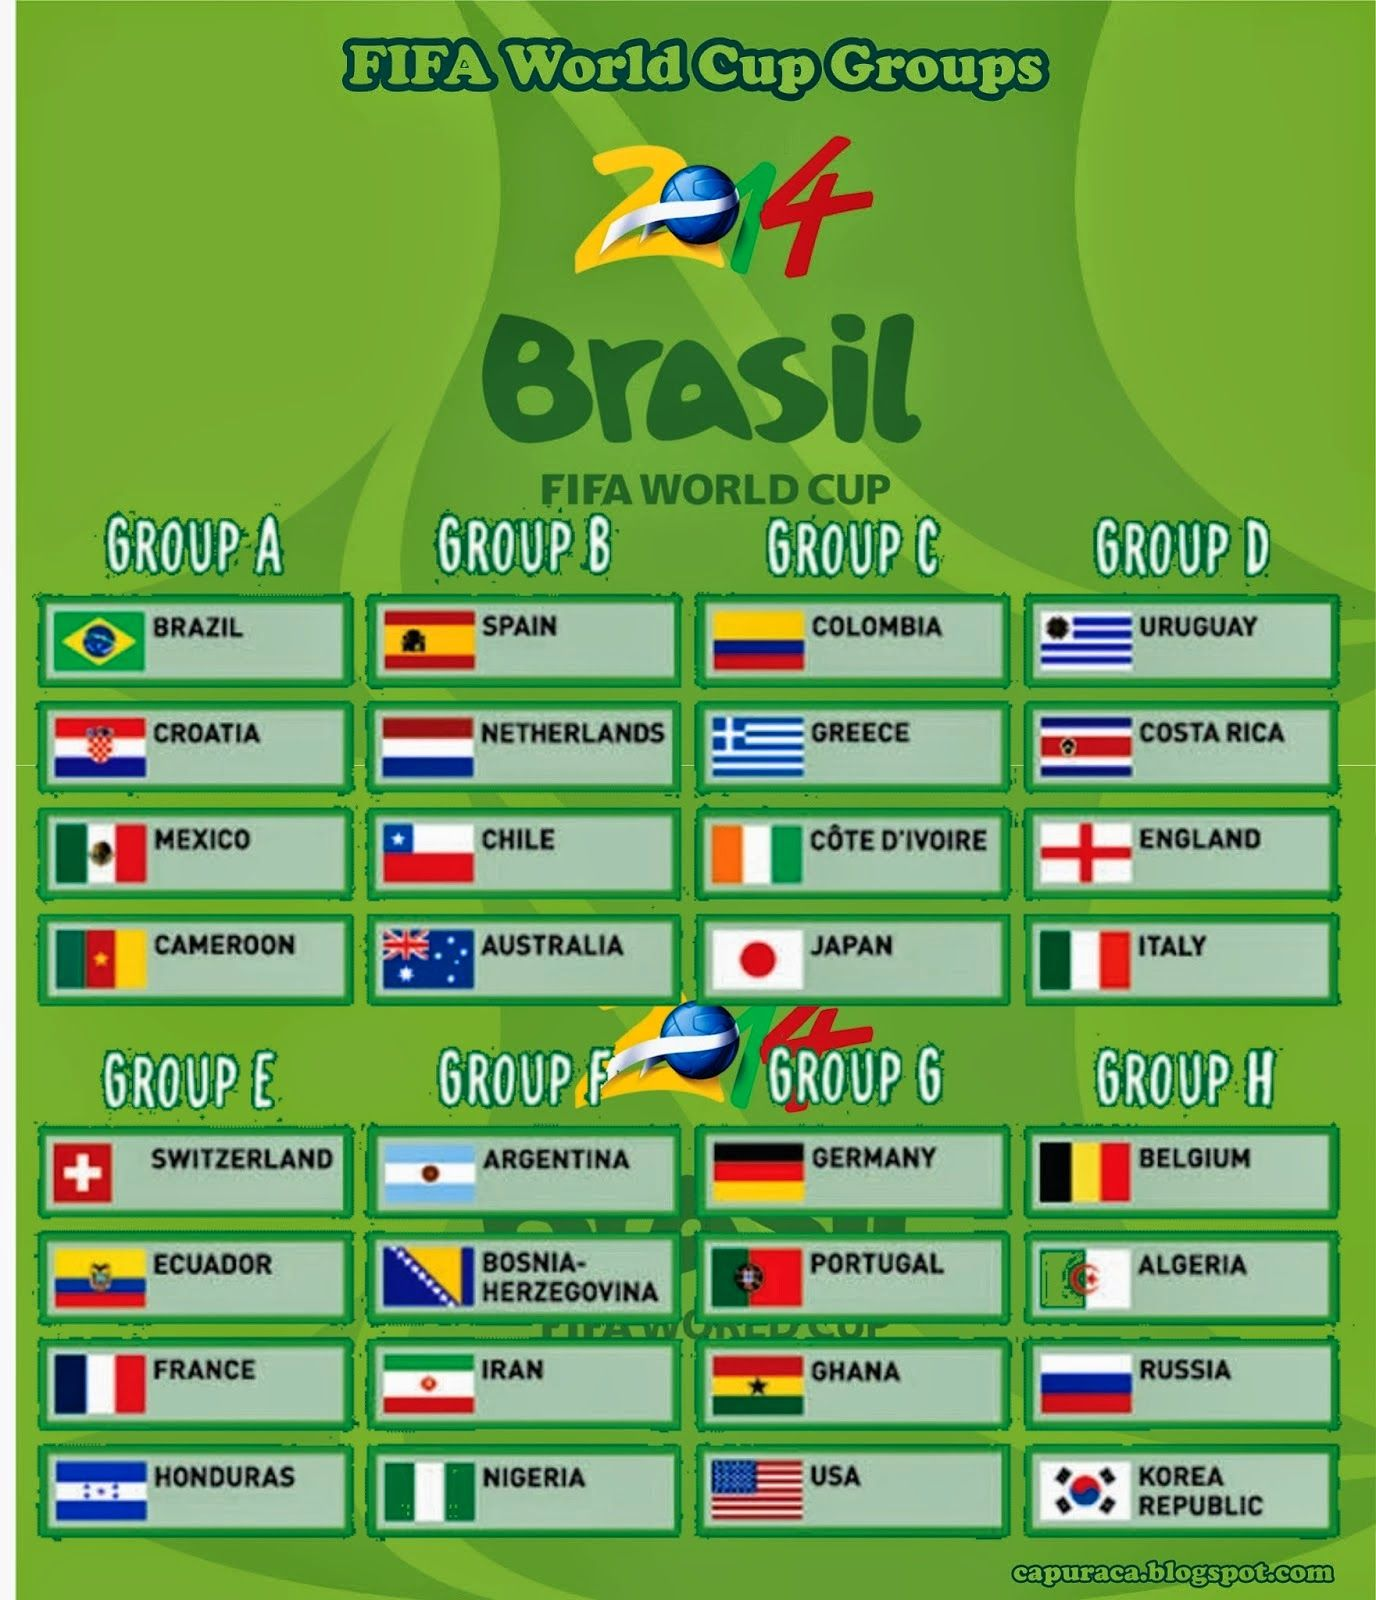 Pin By Debra Mccray On Fifa 20 In 2020 World Cup 2014 World Cup Groups World Cup